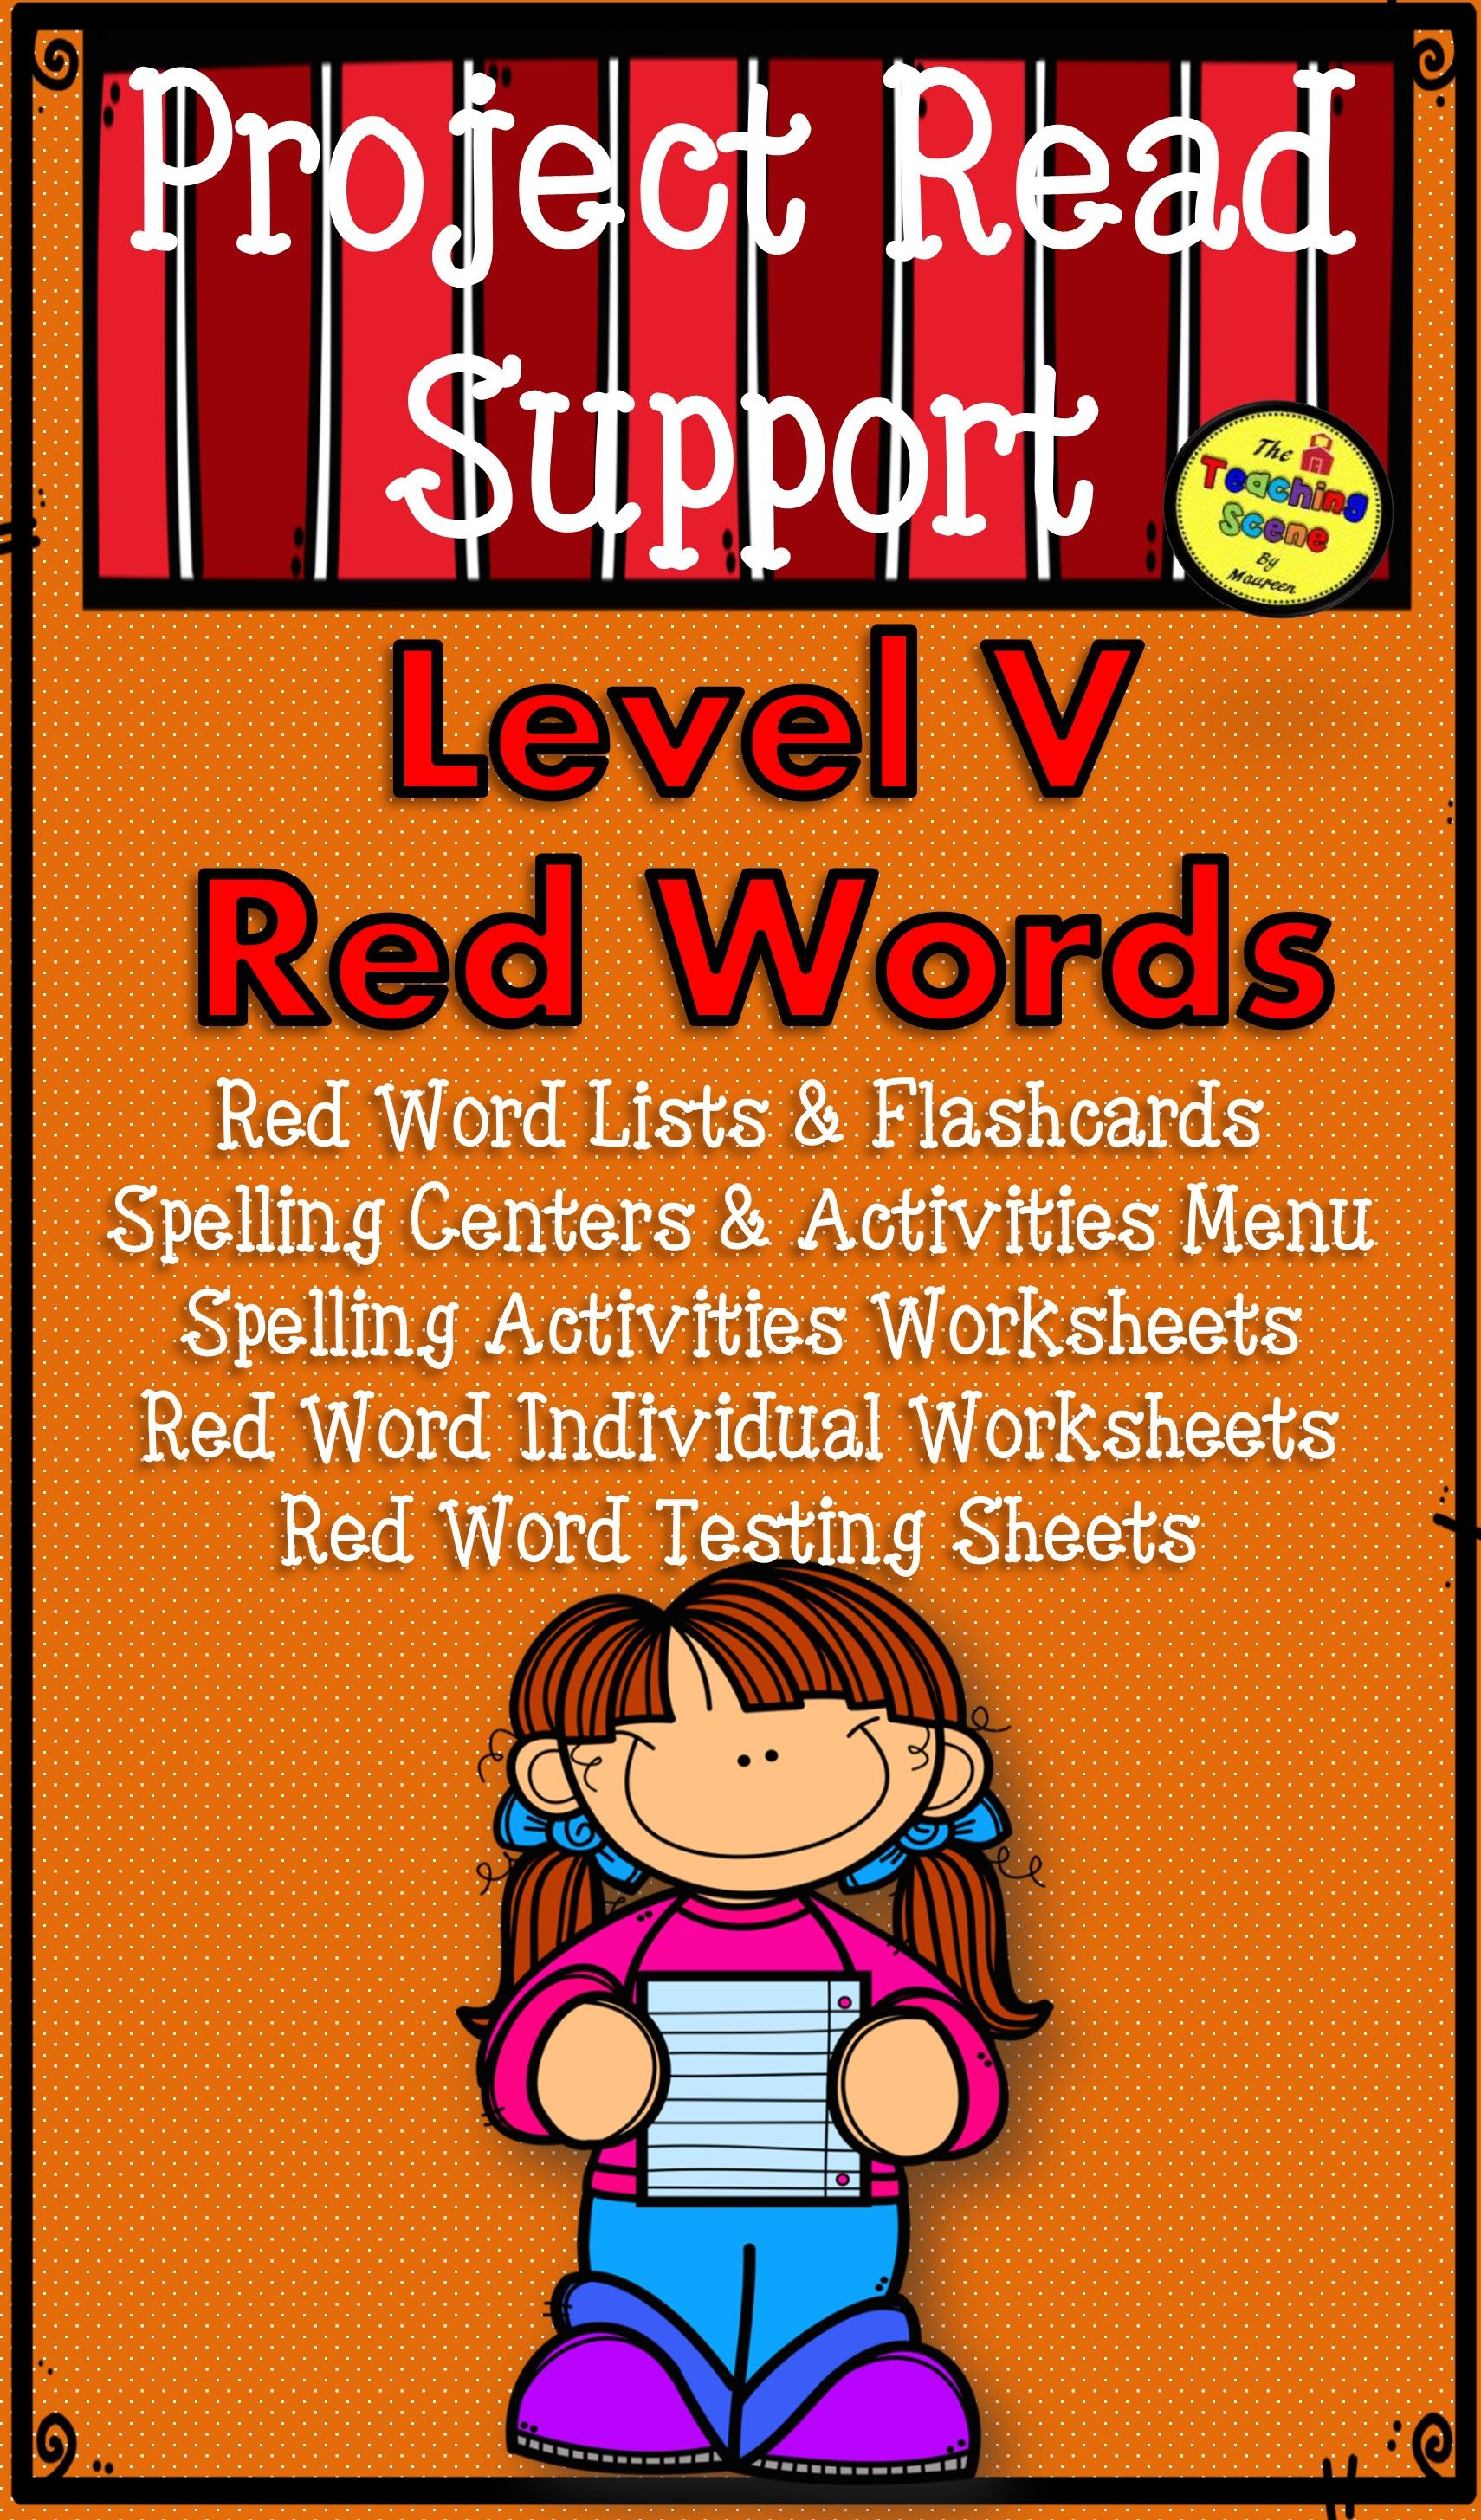 Project Read Support Red Word Level V Centers Activities